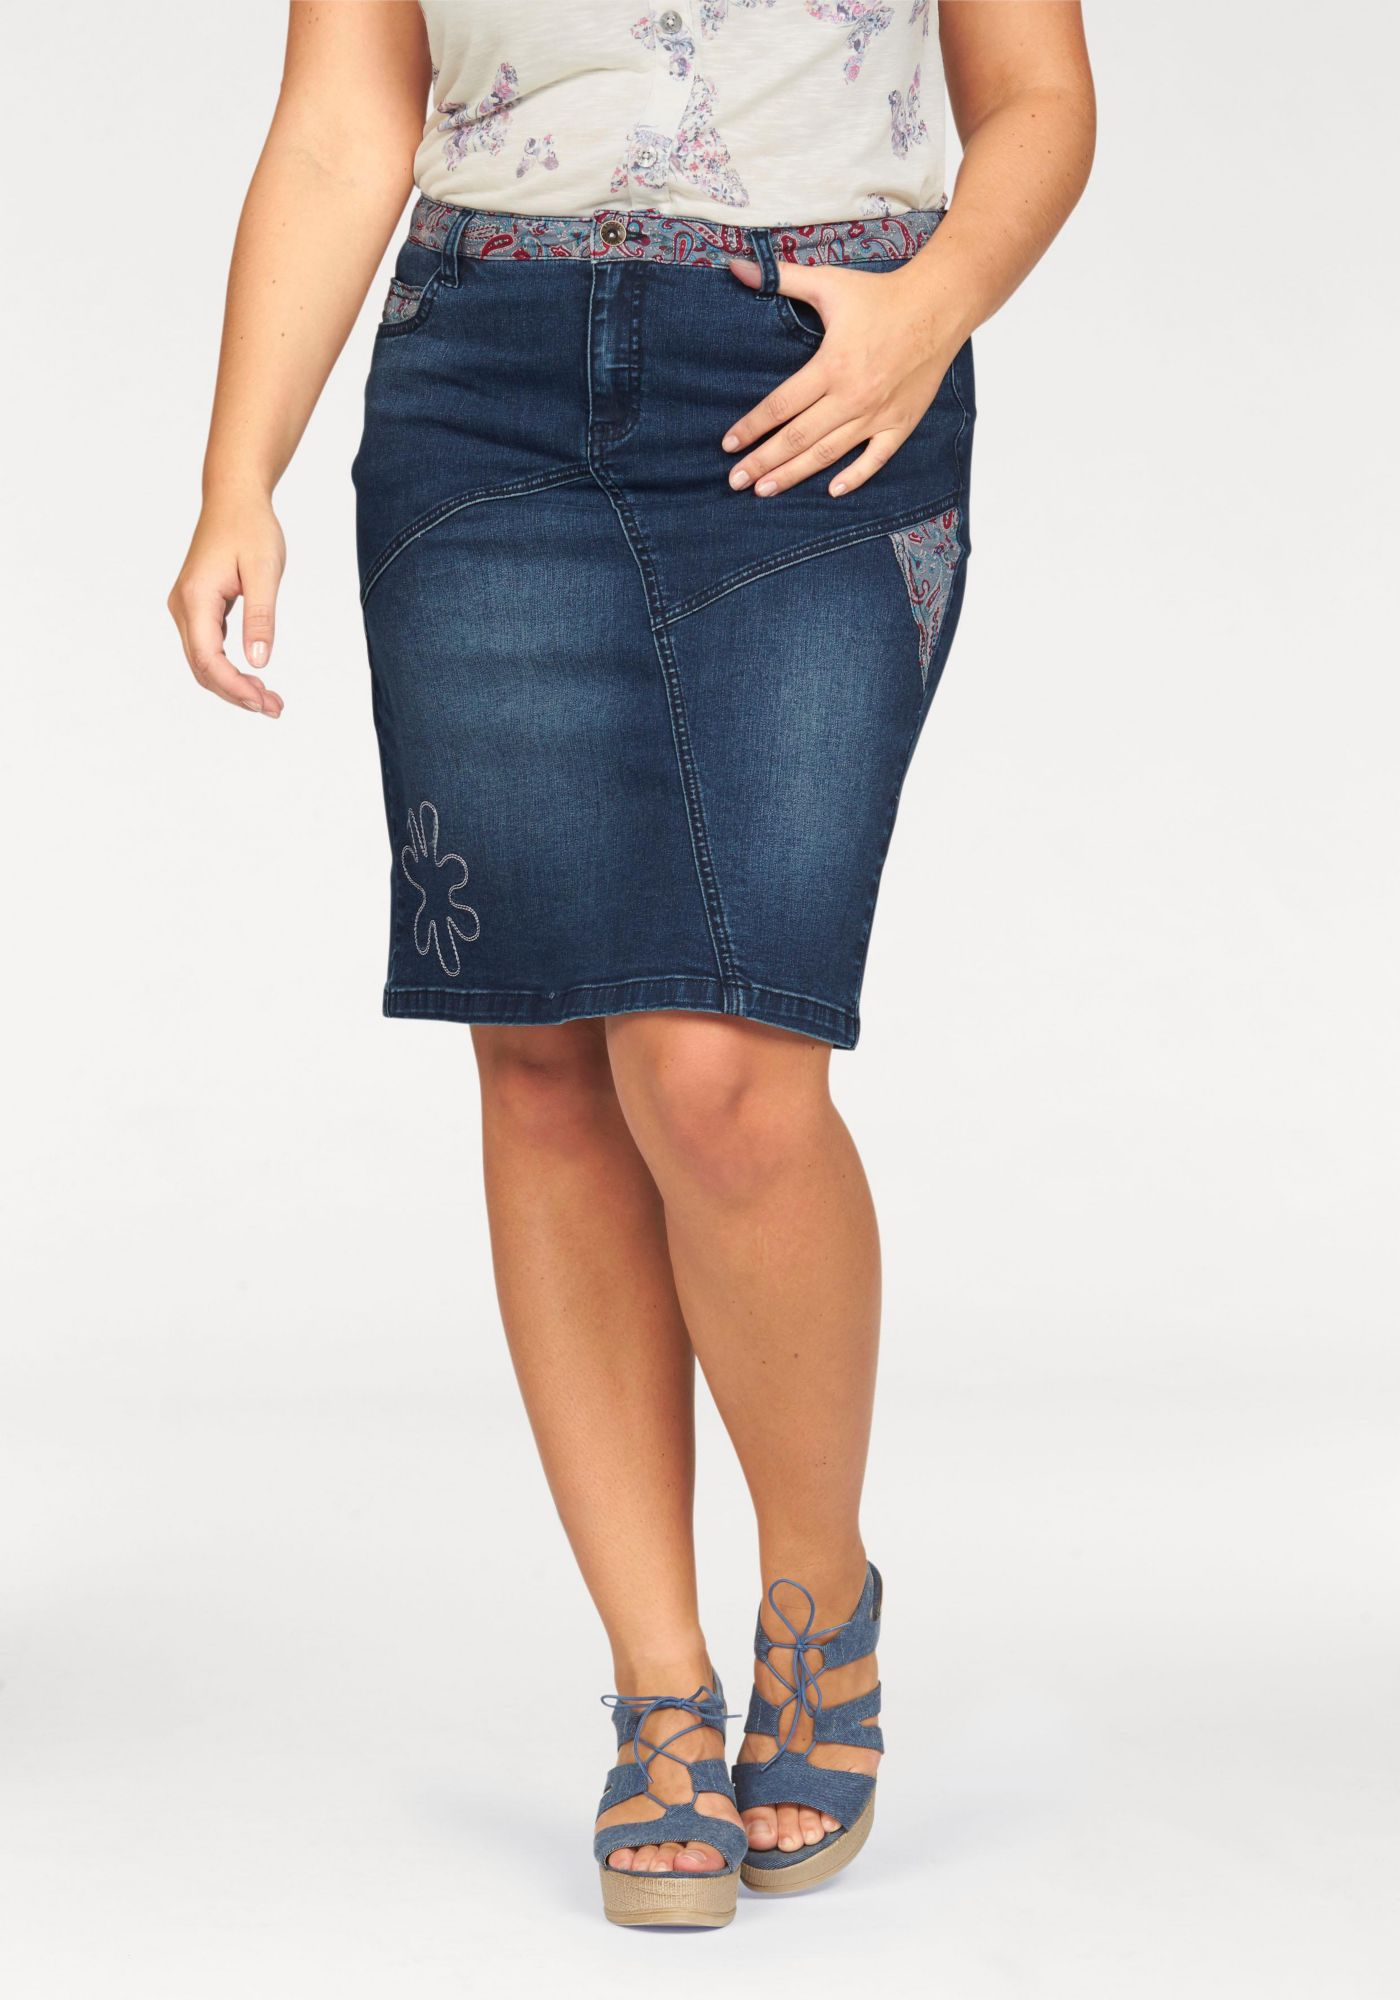 BOYSENS Boysen's Jeansrock »Pencil Skirt«